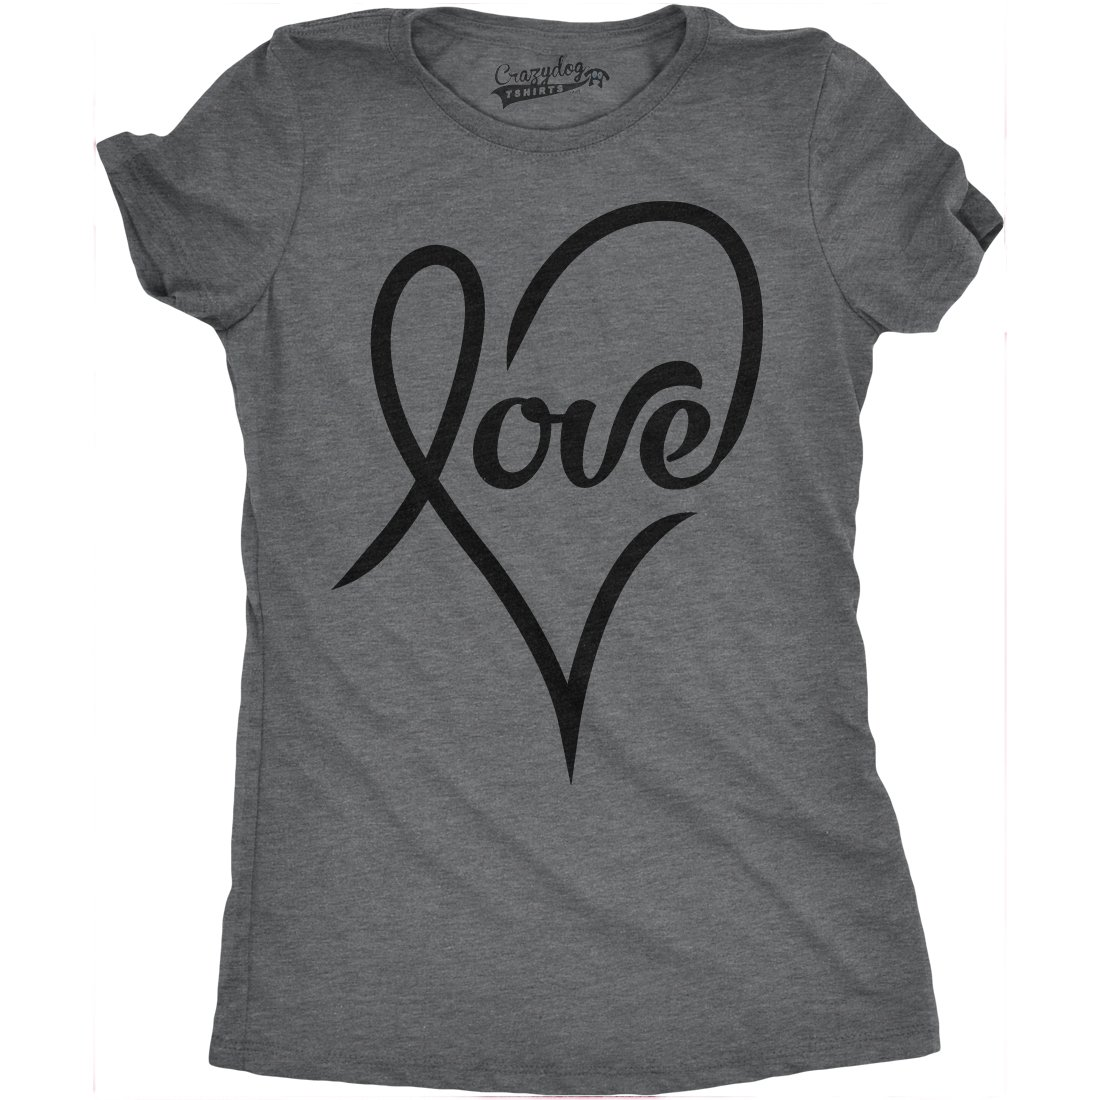 Womens Love Cursive Heart Design Cute Valentines Day Girly T shirt Crazy Dog Tshirts 017LoveCursiveWMN